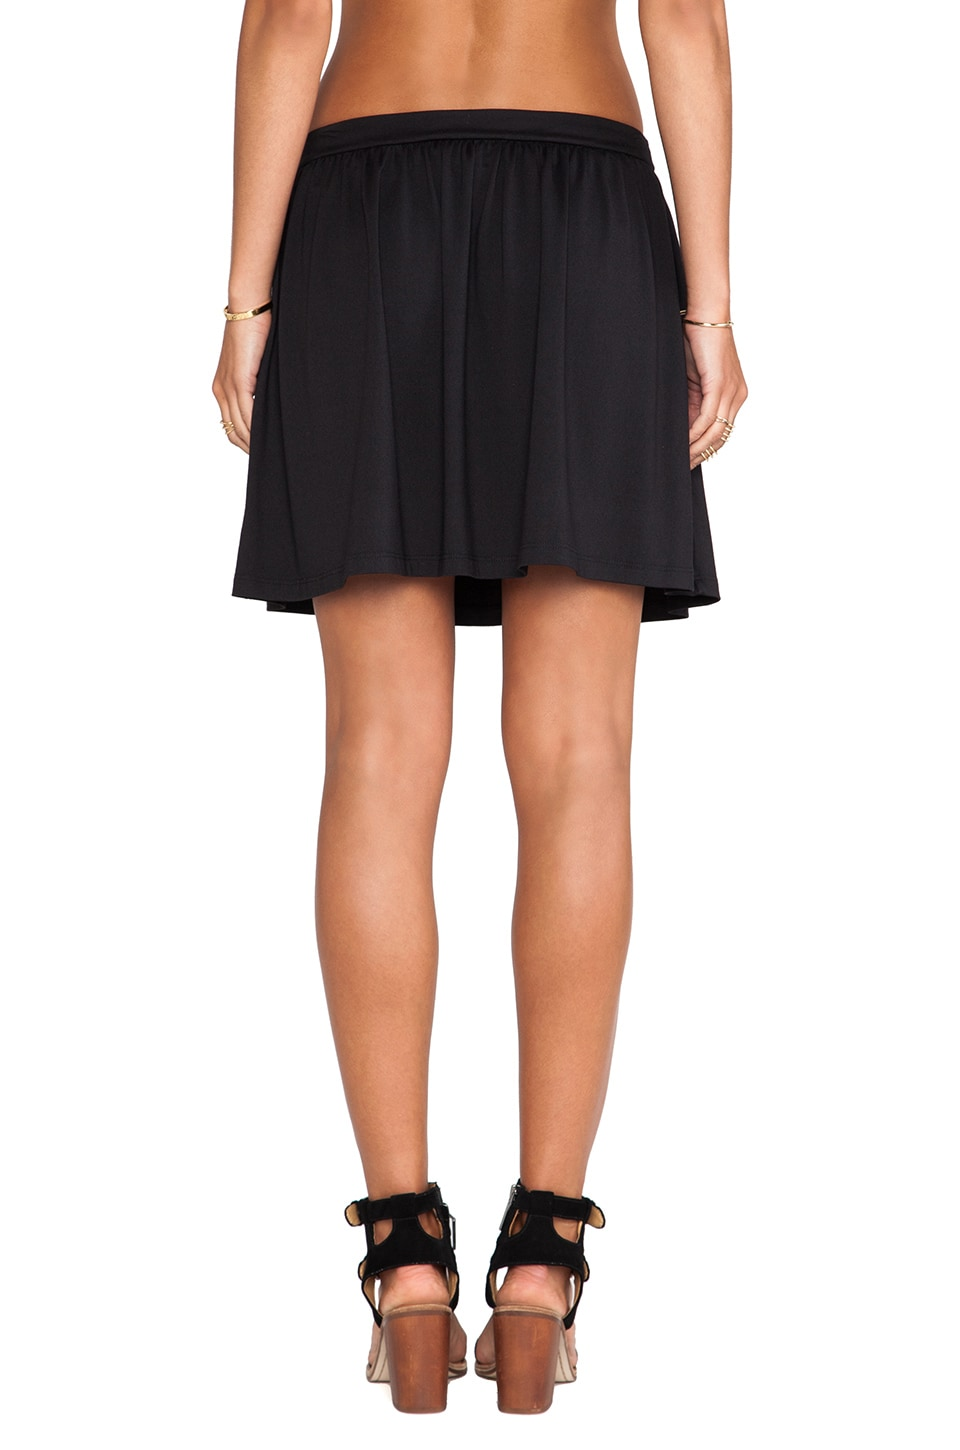 "Susana Monaco Light Supplex Flair Skirt 17"" in Black"